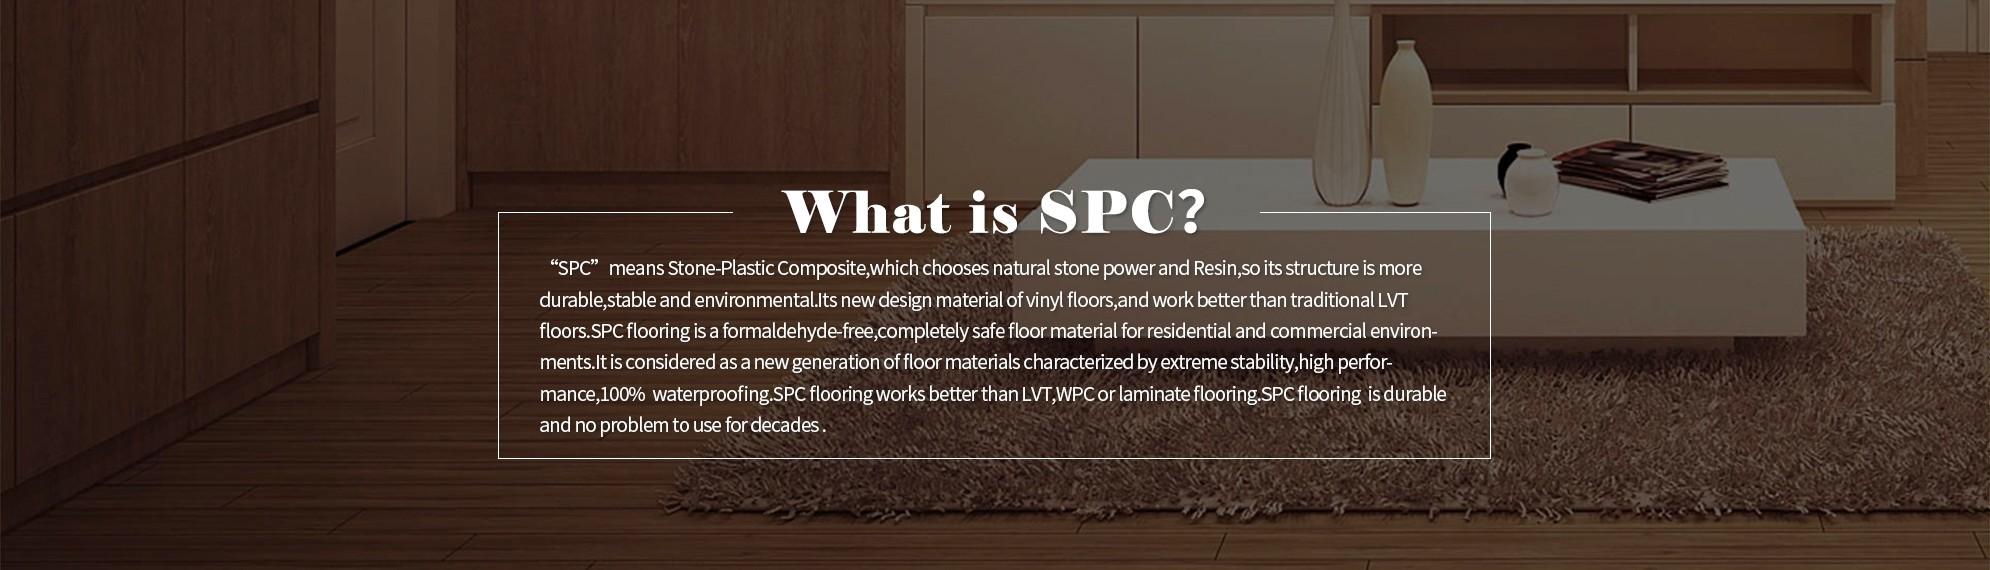 What is SPC flooring?